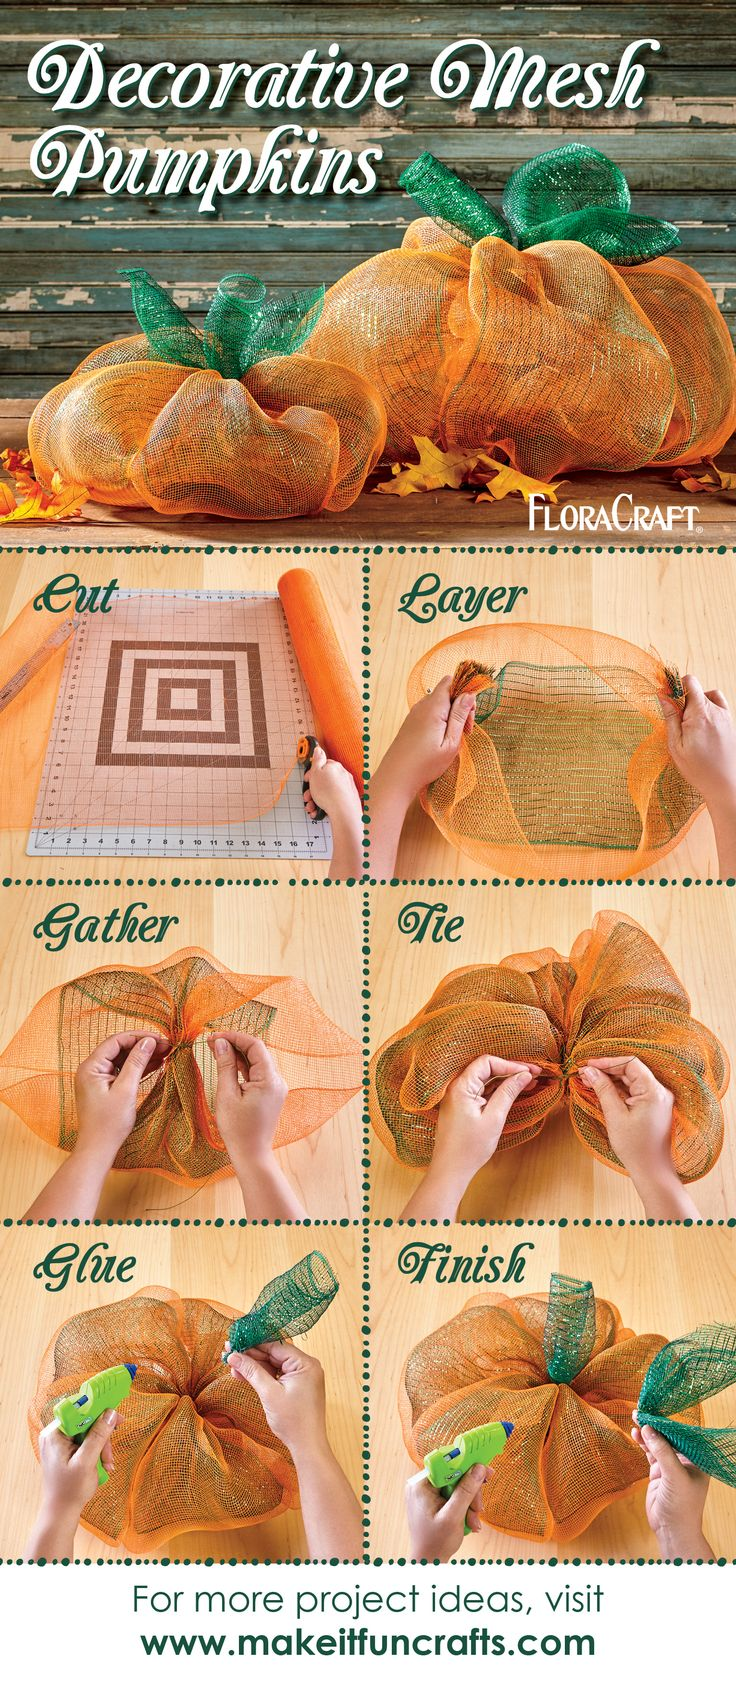 Who says deco mesh is just for wreath making? Get creative and use this versatile product to create fall decor and other crafts, just like these adorable pumpkins!